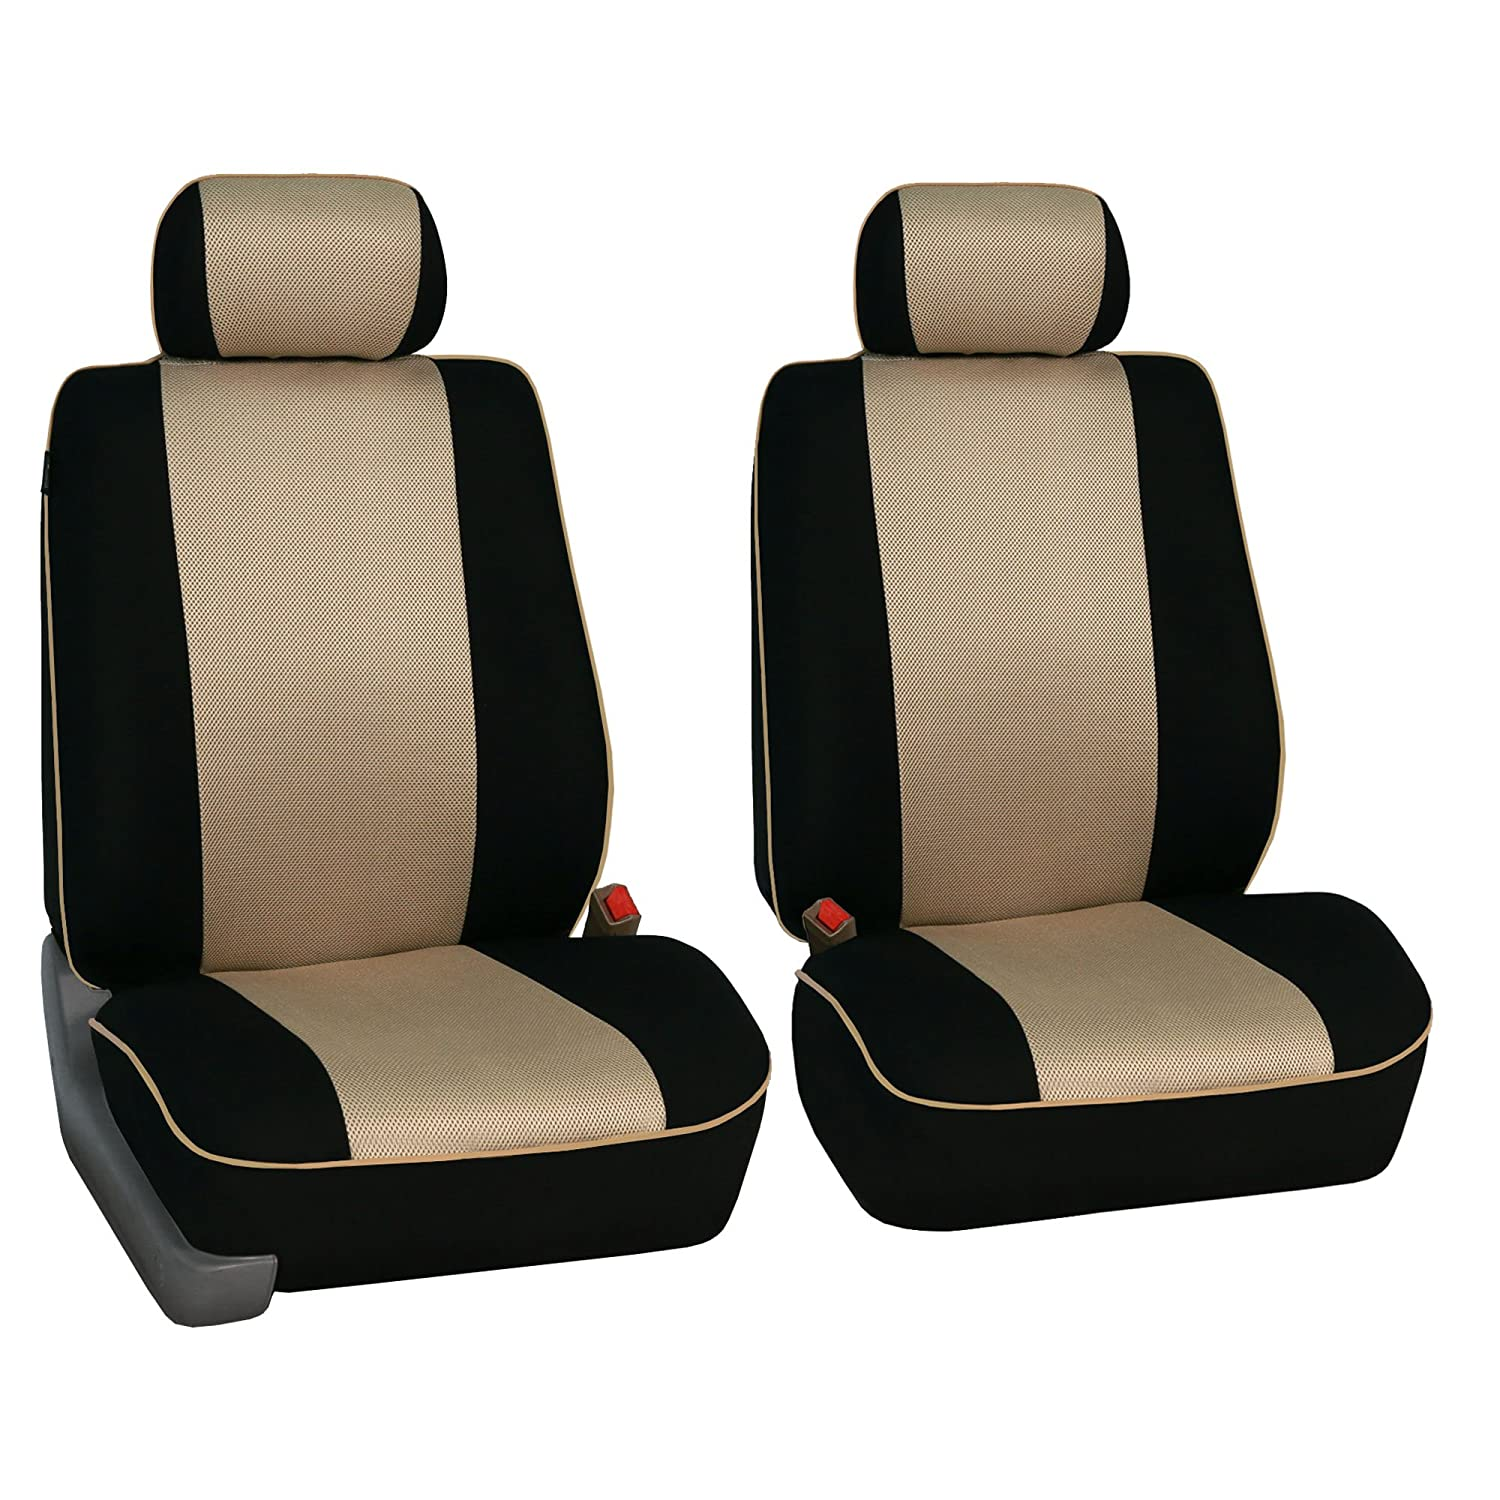 Gray // Black- Fit Most Car FH GROUP FB064102 Cross Weave Fabric Pair Set Seat Covers Suv or Van Airbag Compatible Truck